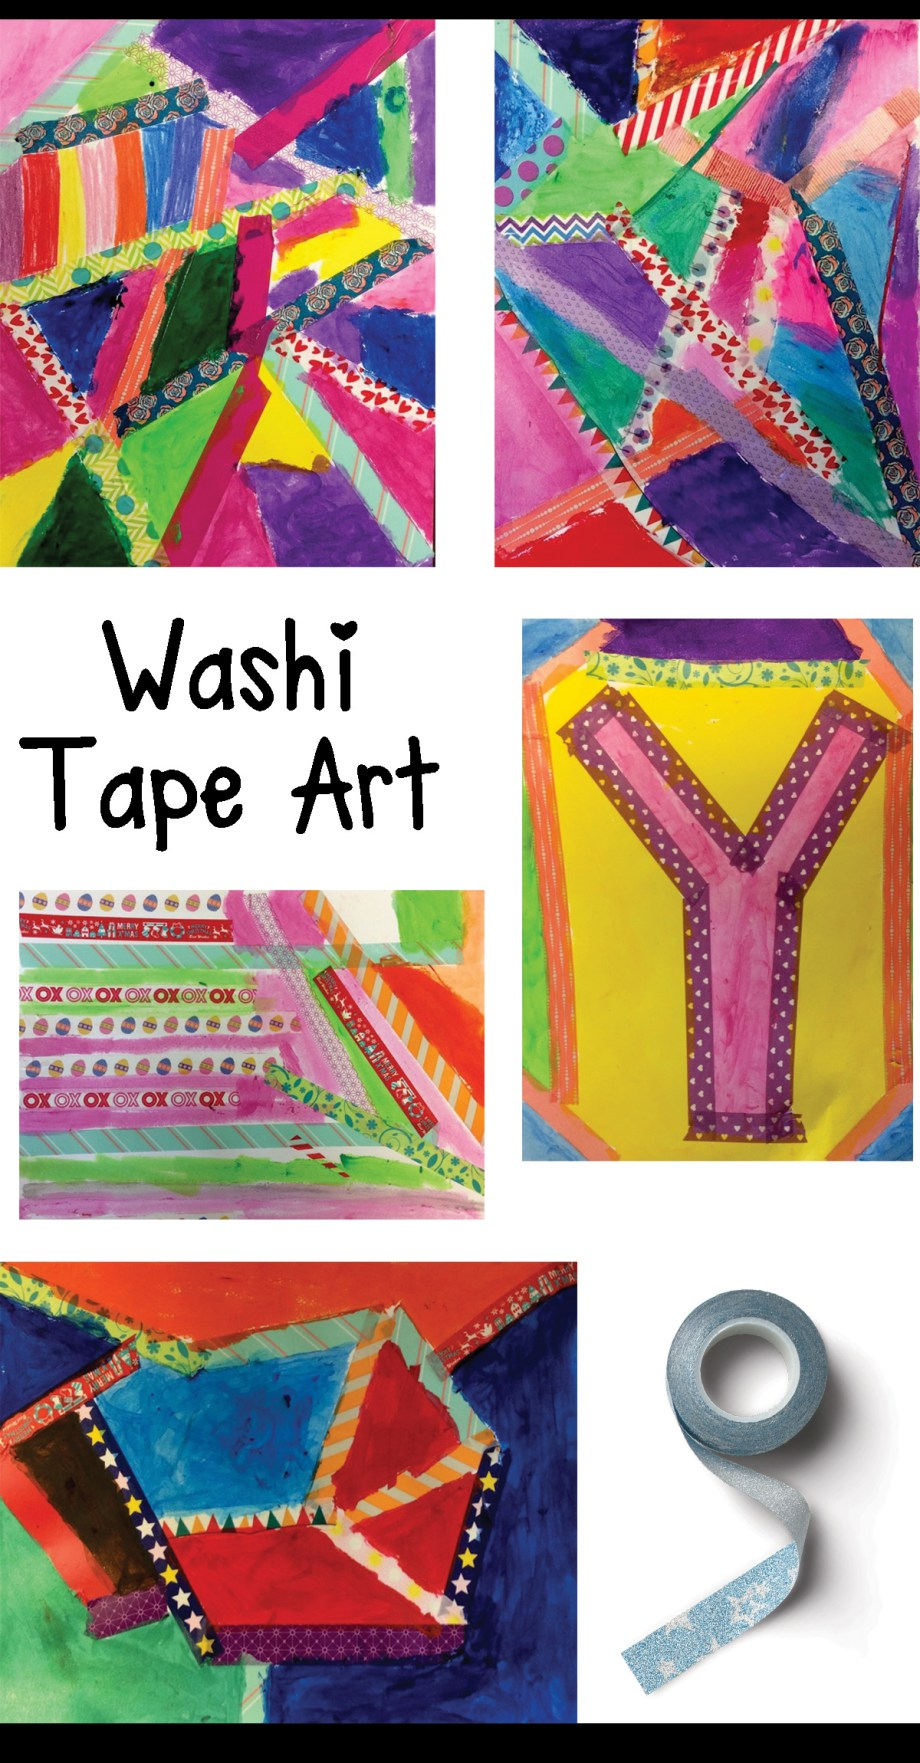 Washi Tape Art Creations Art Is Basic An Elementary